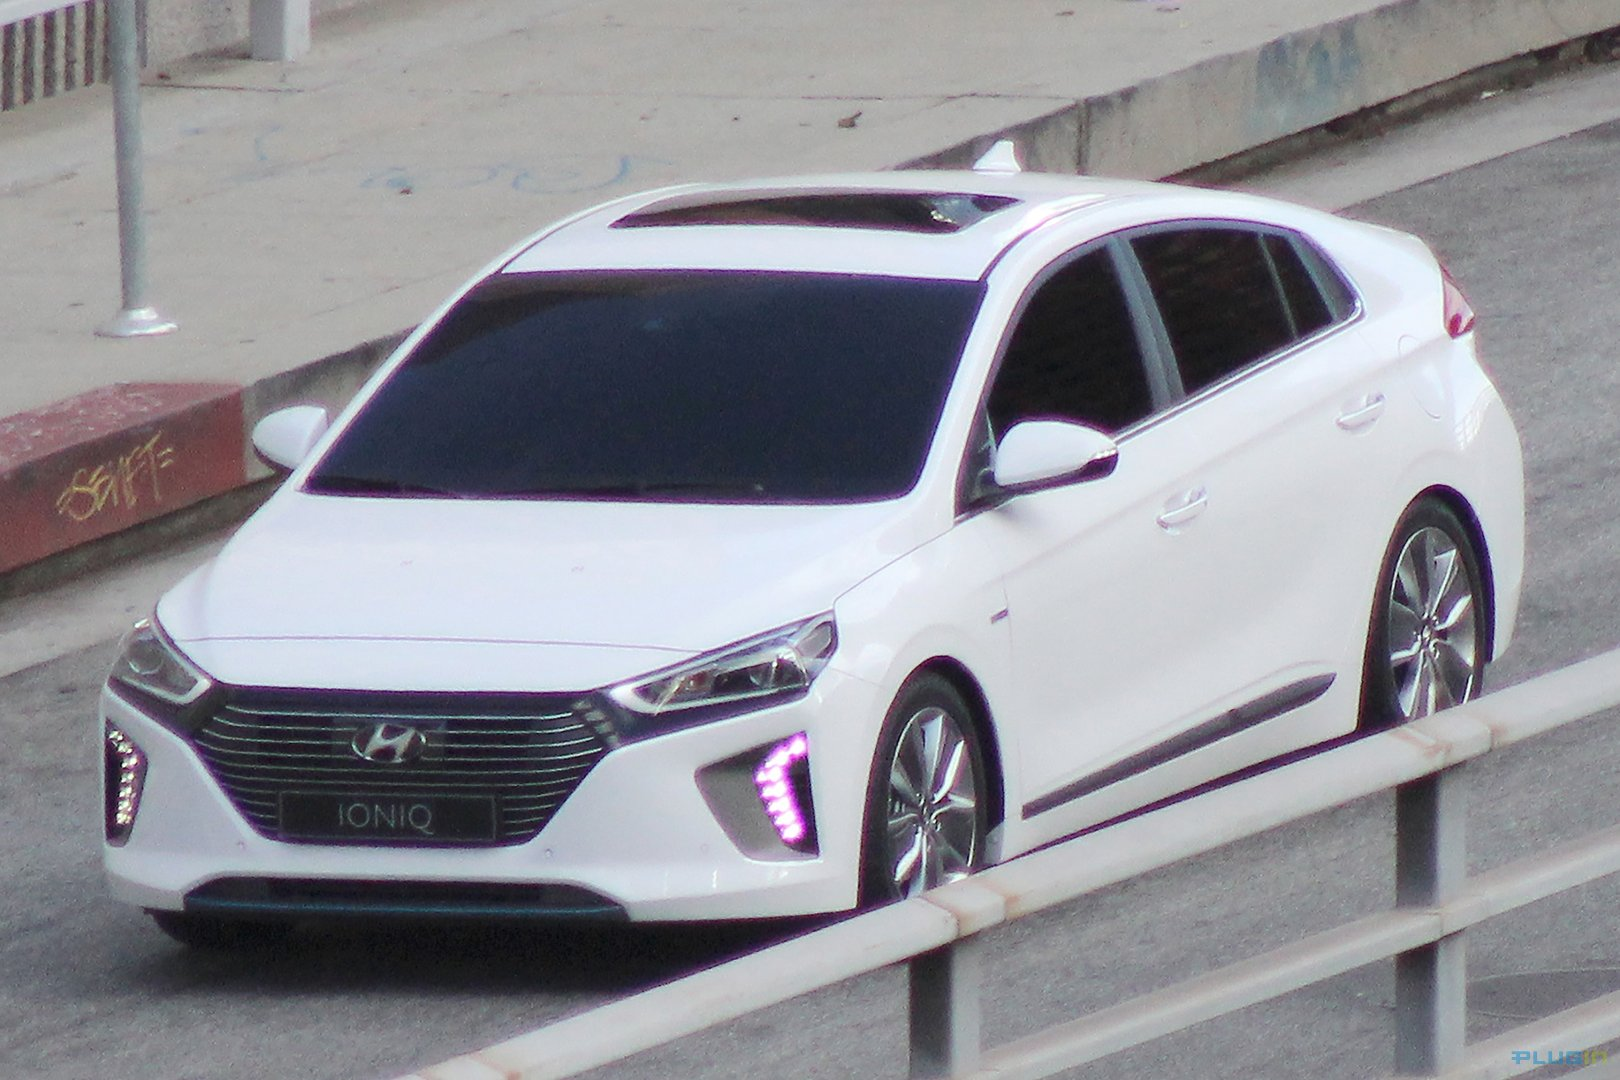 Hyundai Cars Being Investigated For Sudden Acceleration In Singapore